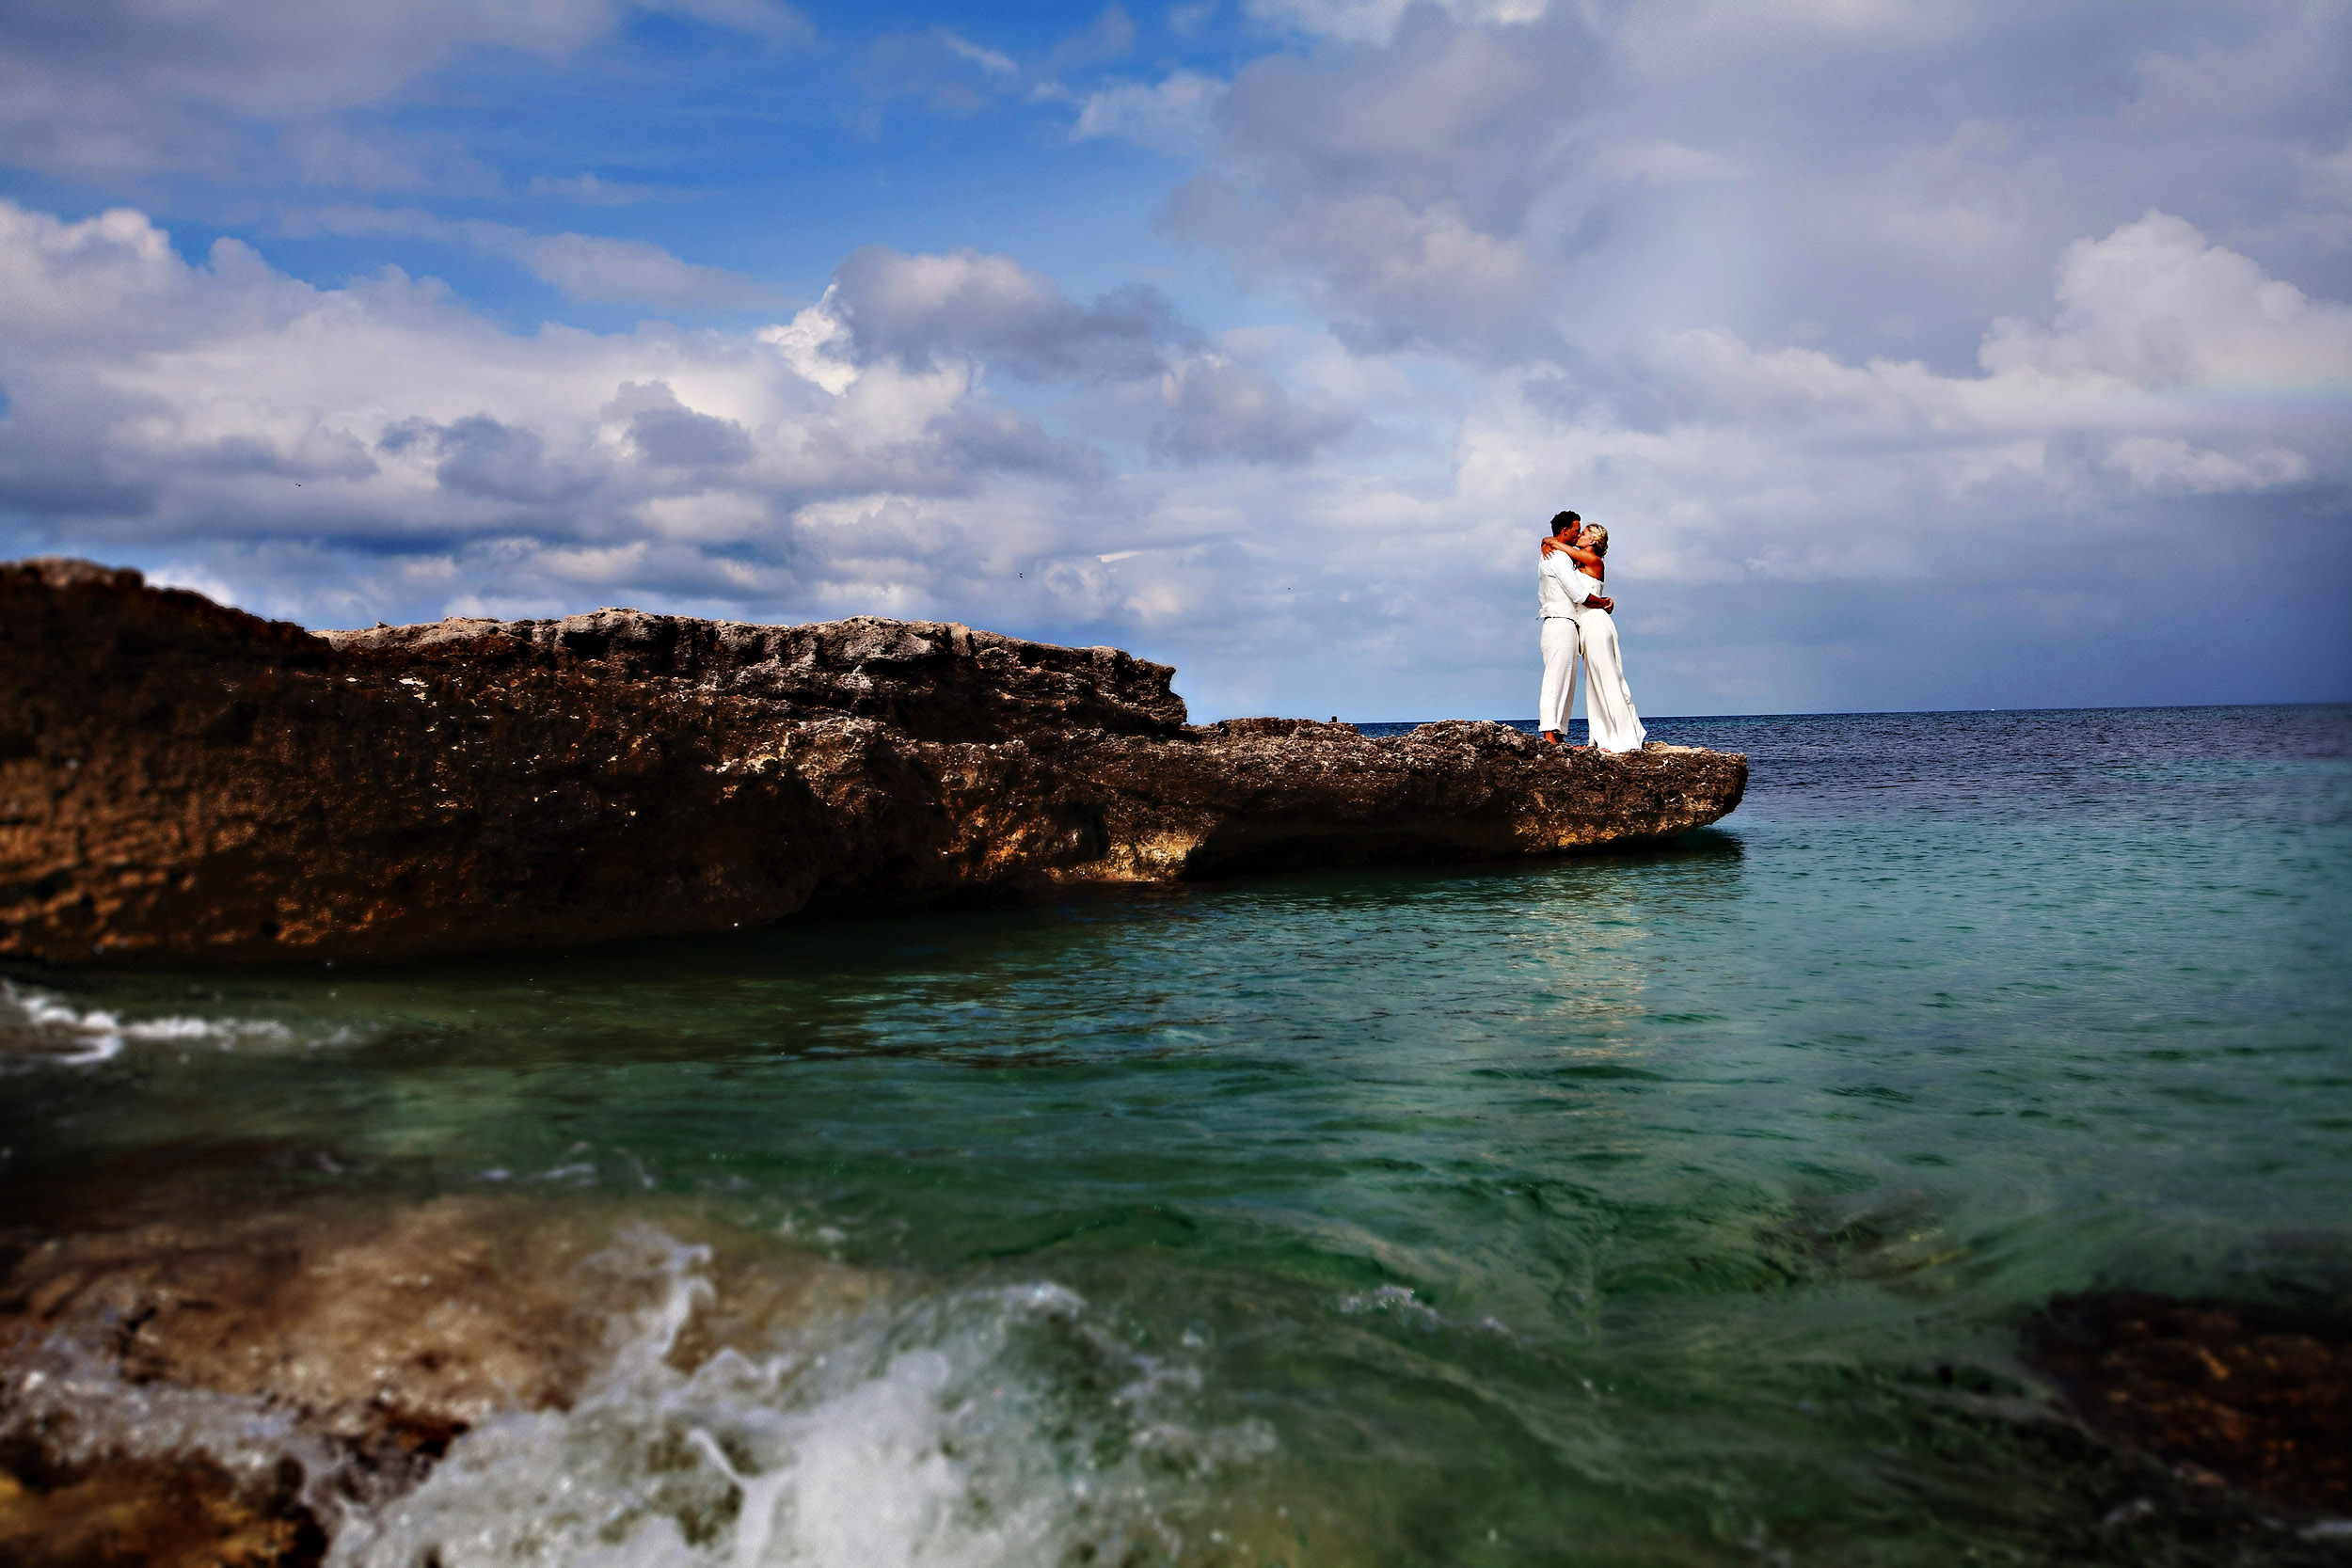 weddings-aruba-01.jpg